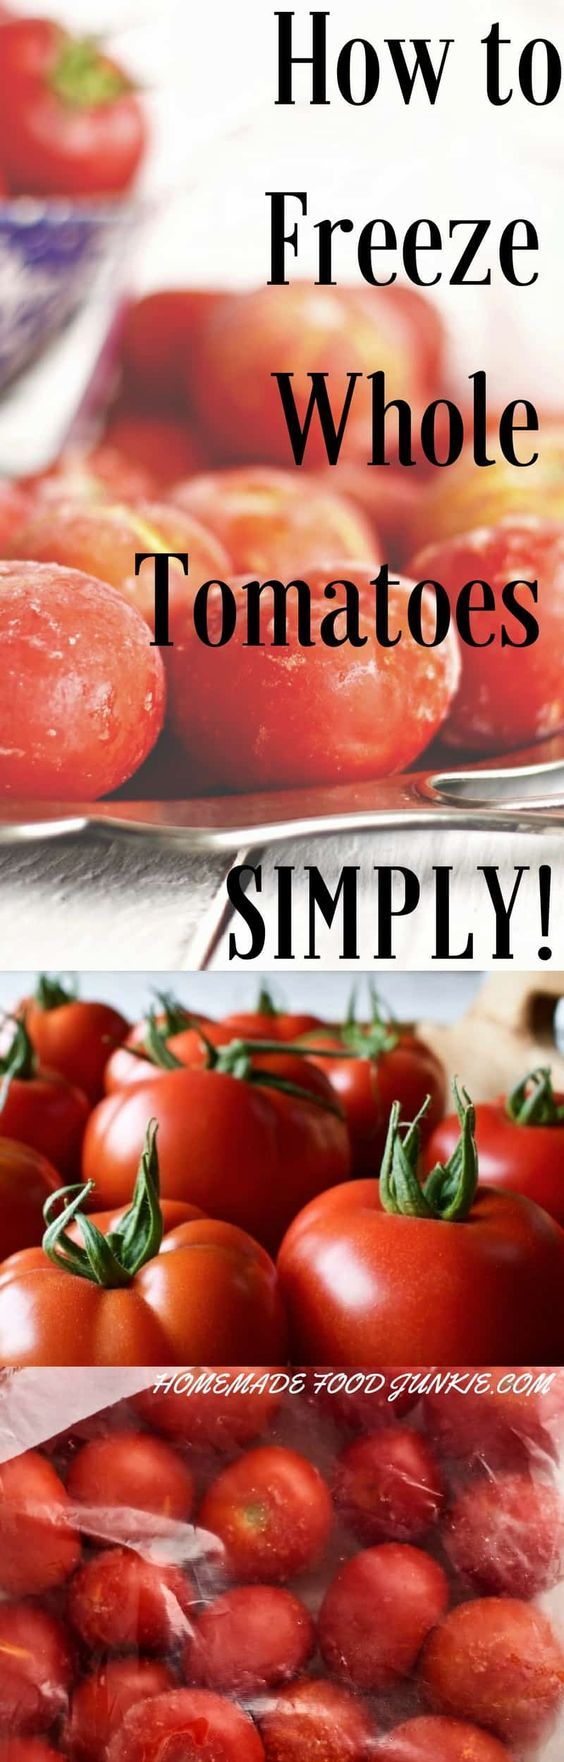 HOW TO FREEZE WHOLE TOMATOES SIMPLY. Could not be easier!